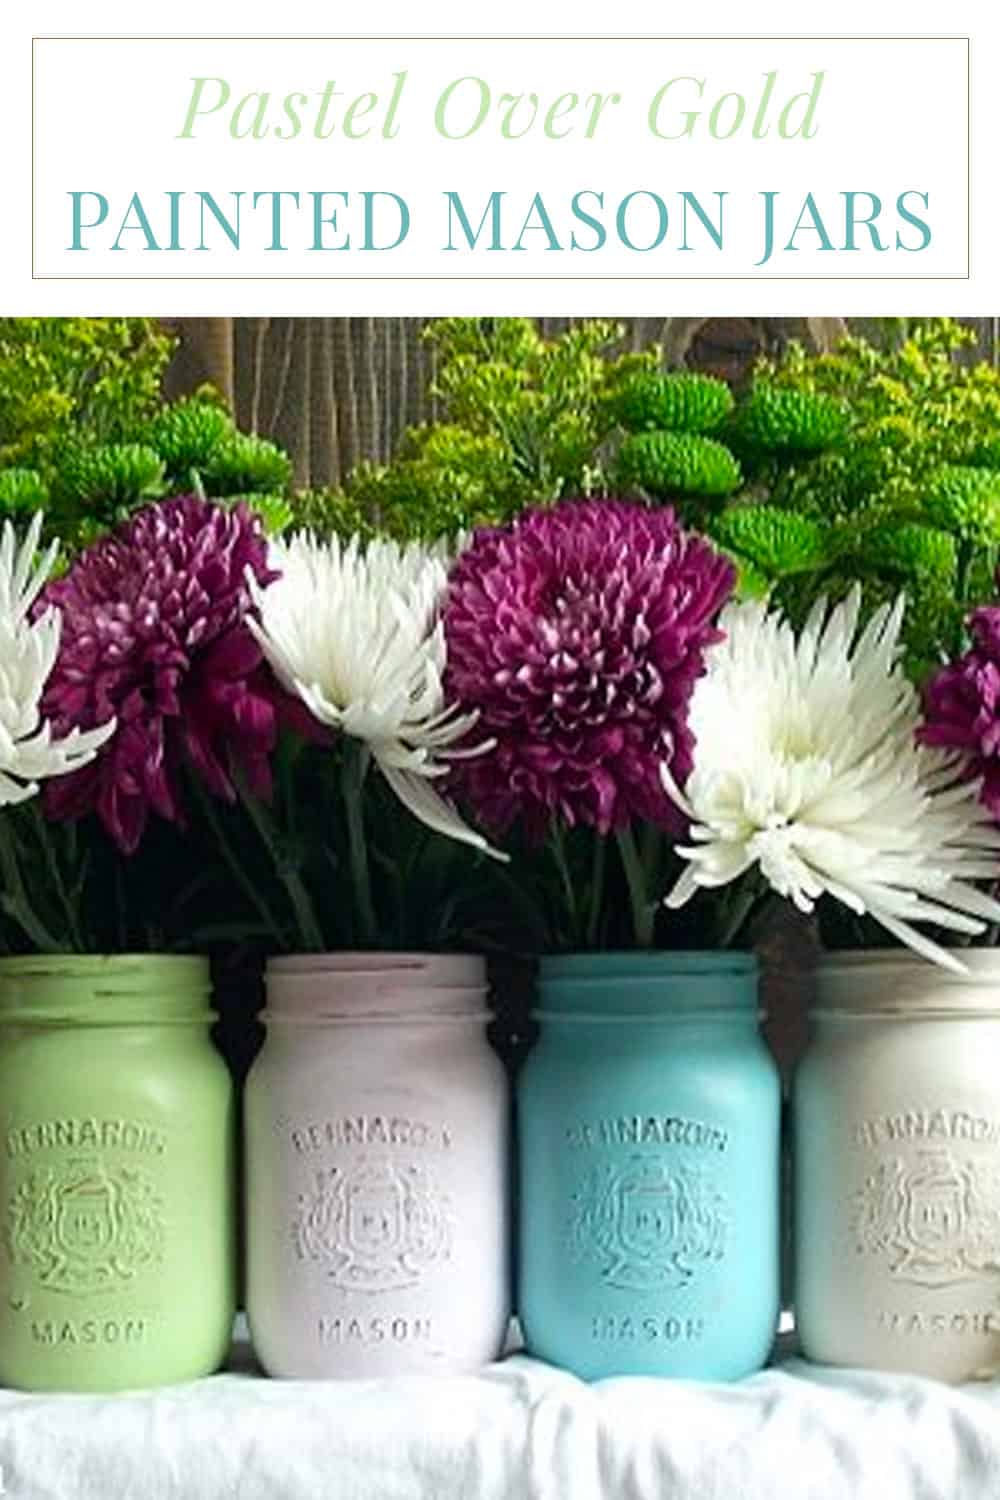 Pastel over gold painted mason jars that can be used as vases (no paint inside).